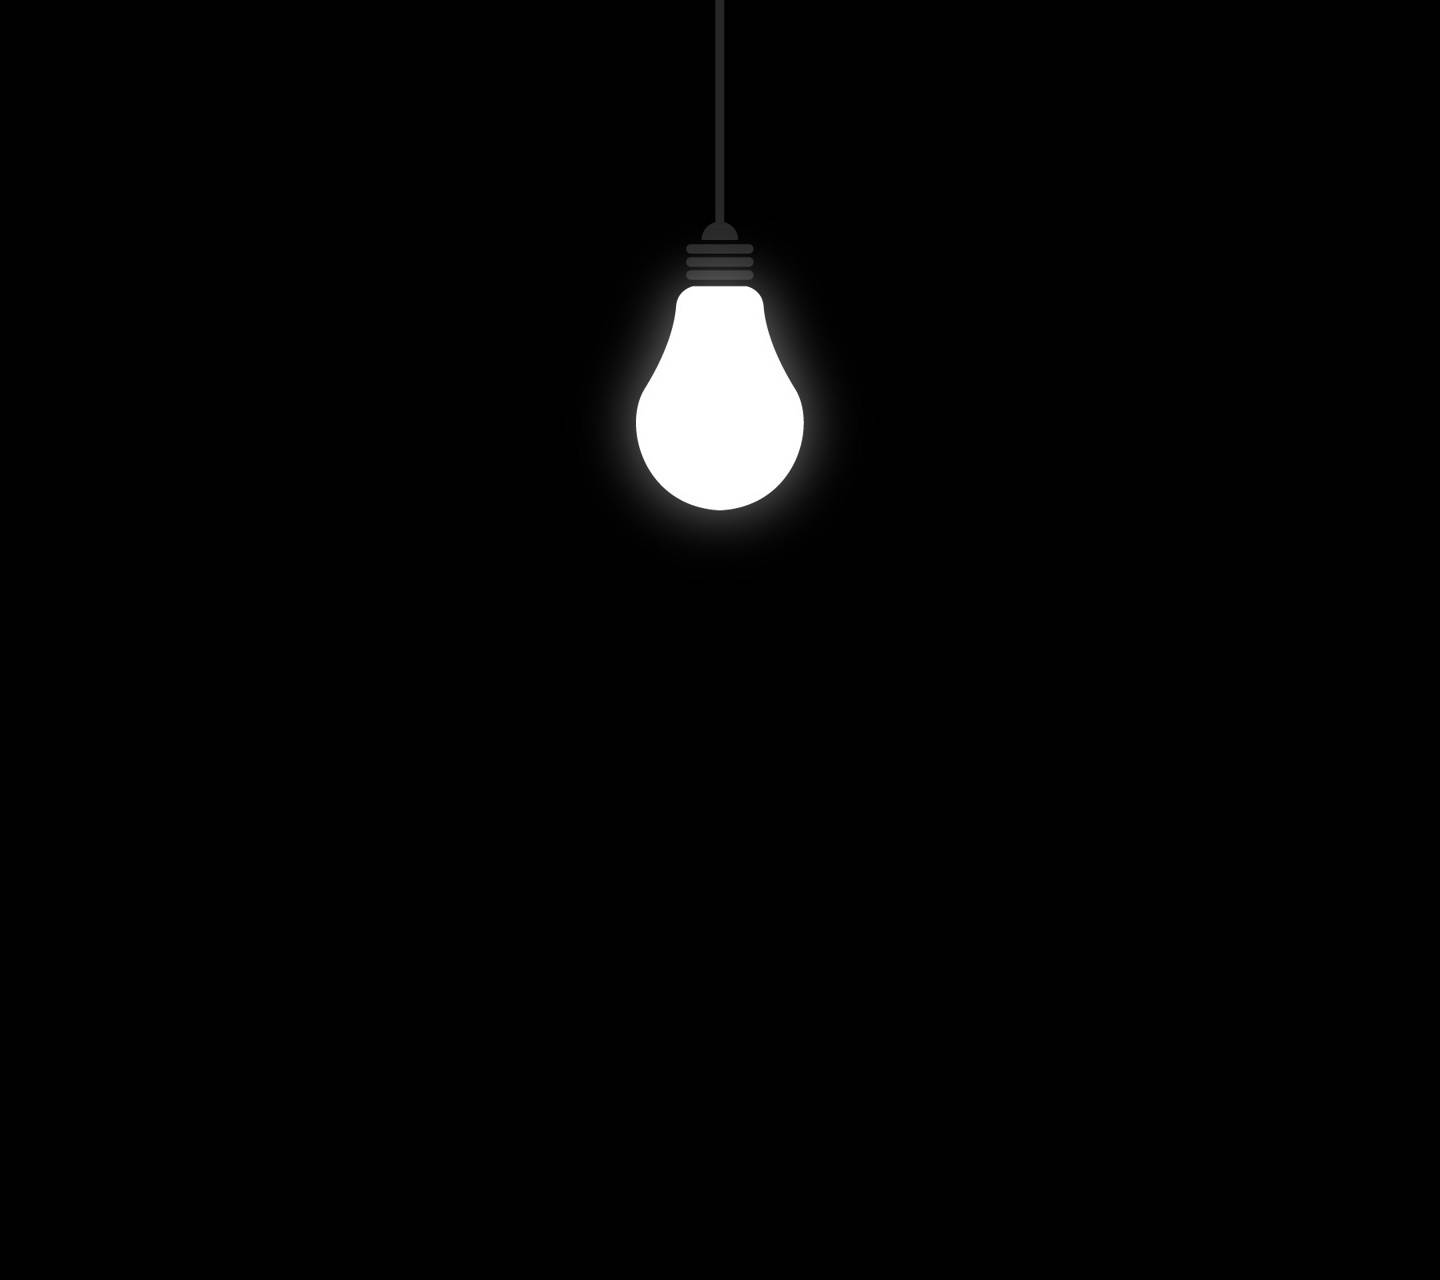 Light In The Dark Wallpaper By Rainbowsong14 16 Free On Zedge